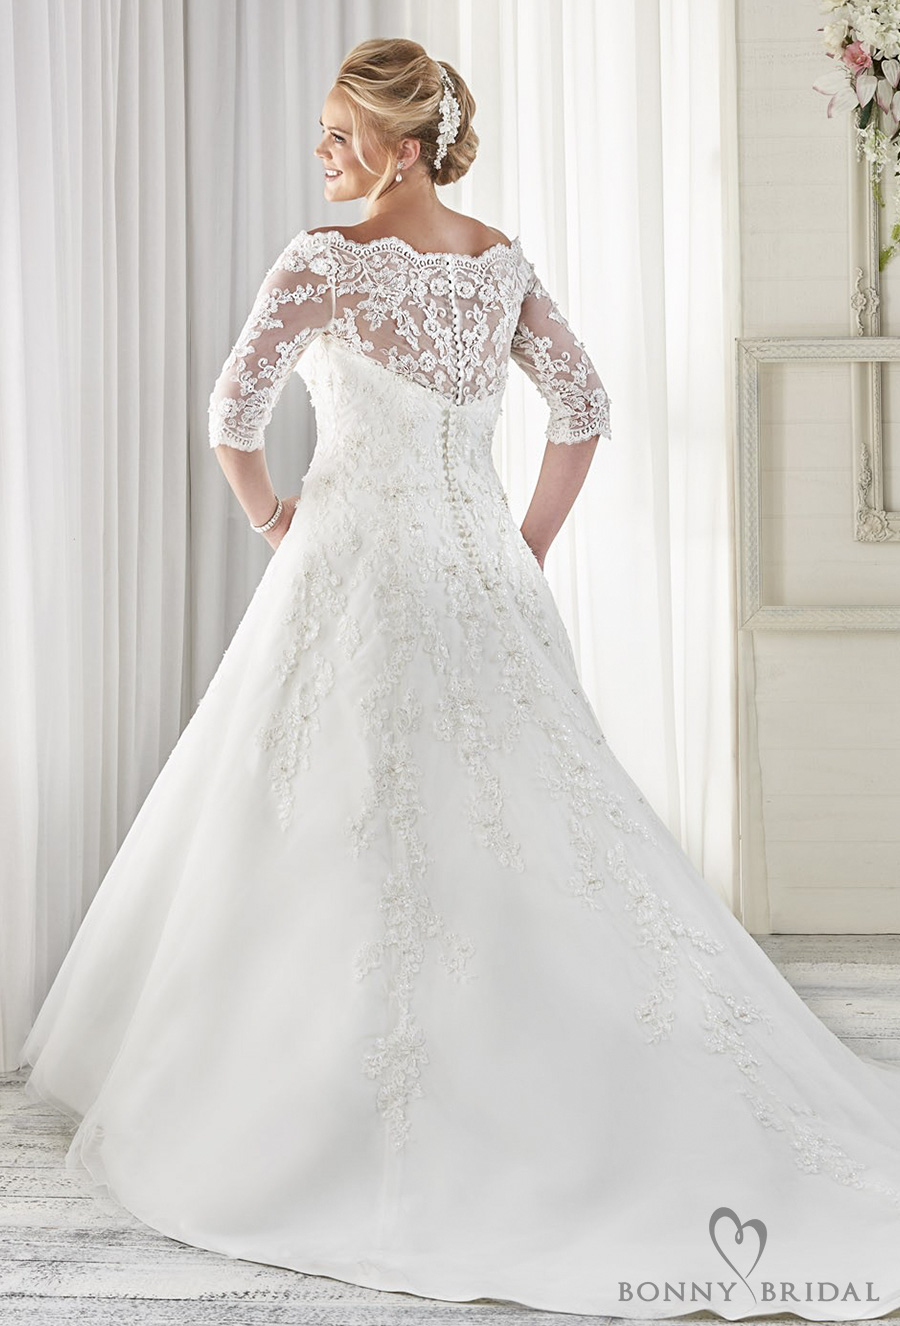 Bonny Bridal 2017 Half Sleeves Off The Shoulder Sweetheart Neckline Heavily Embellished Bodice Plus Size A: Plus Size Wedding Dress Trains At Reisefeber.org